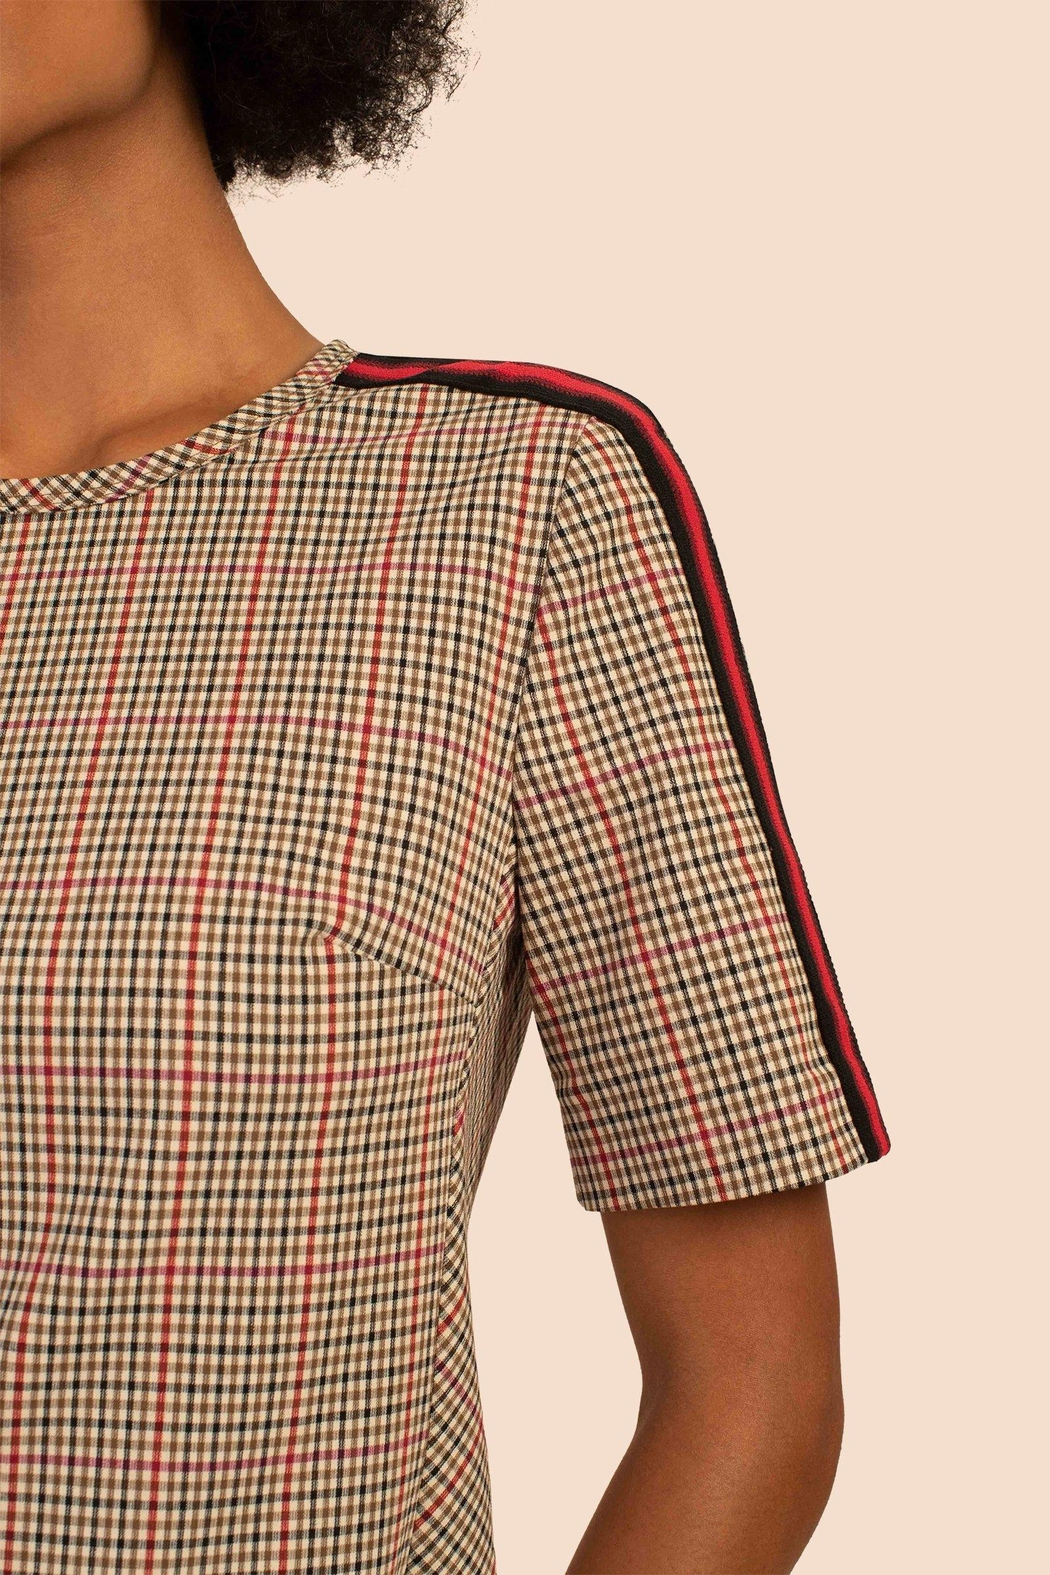 Trina Turk Aden Top - Side Cropped Image